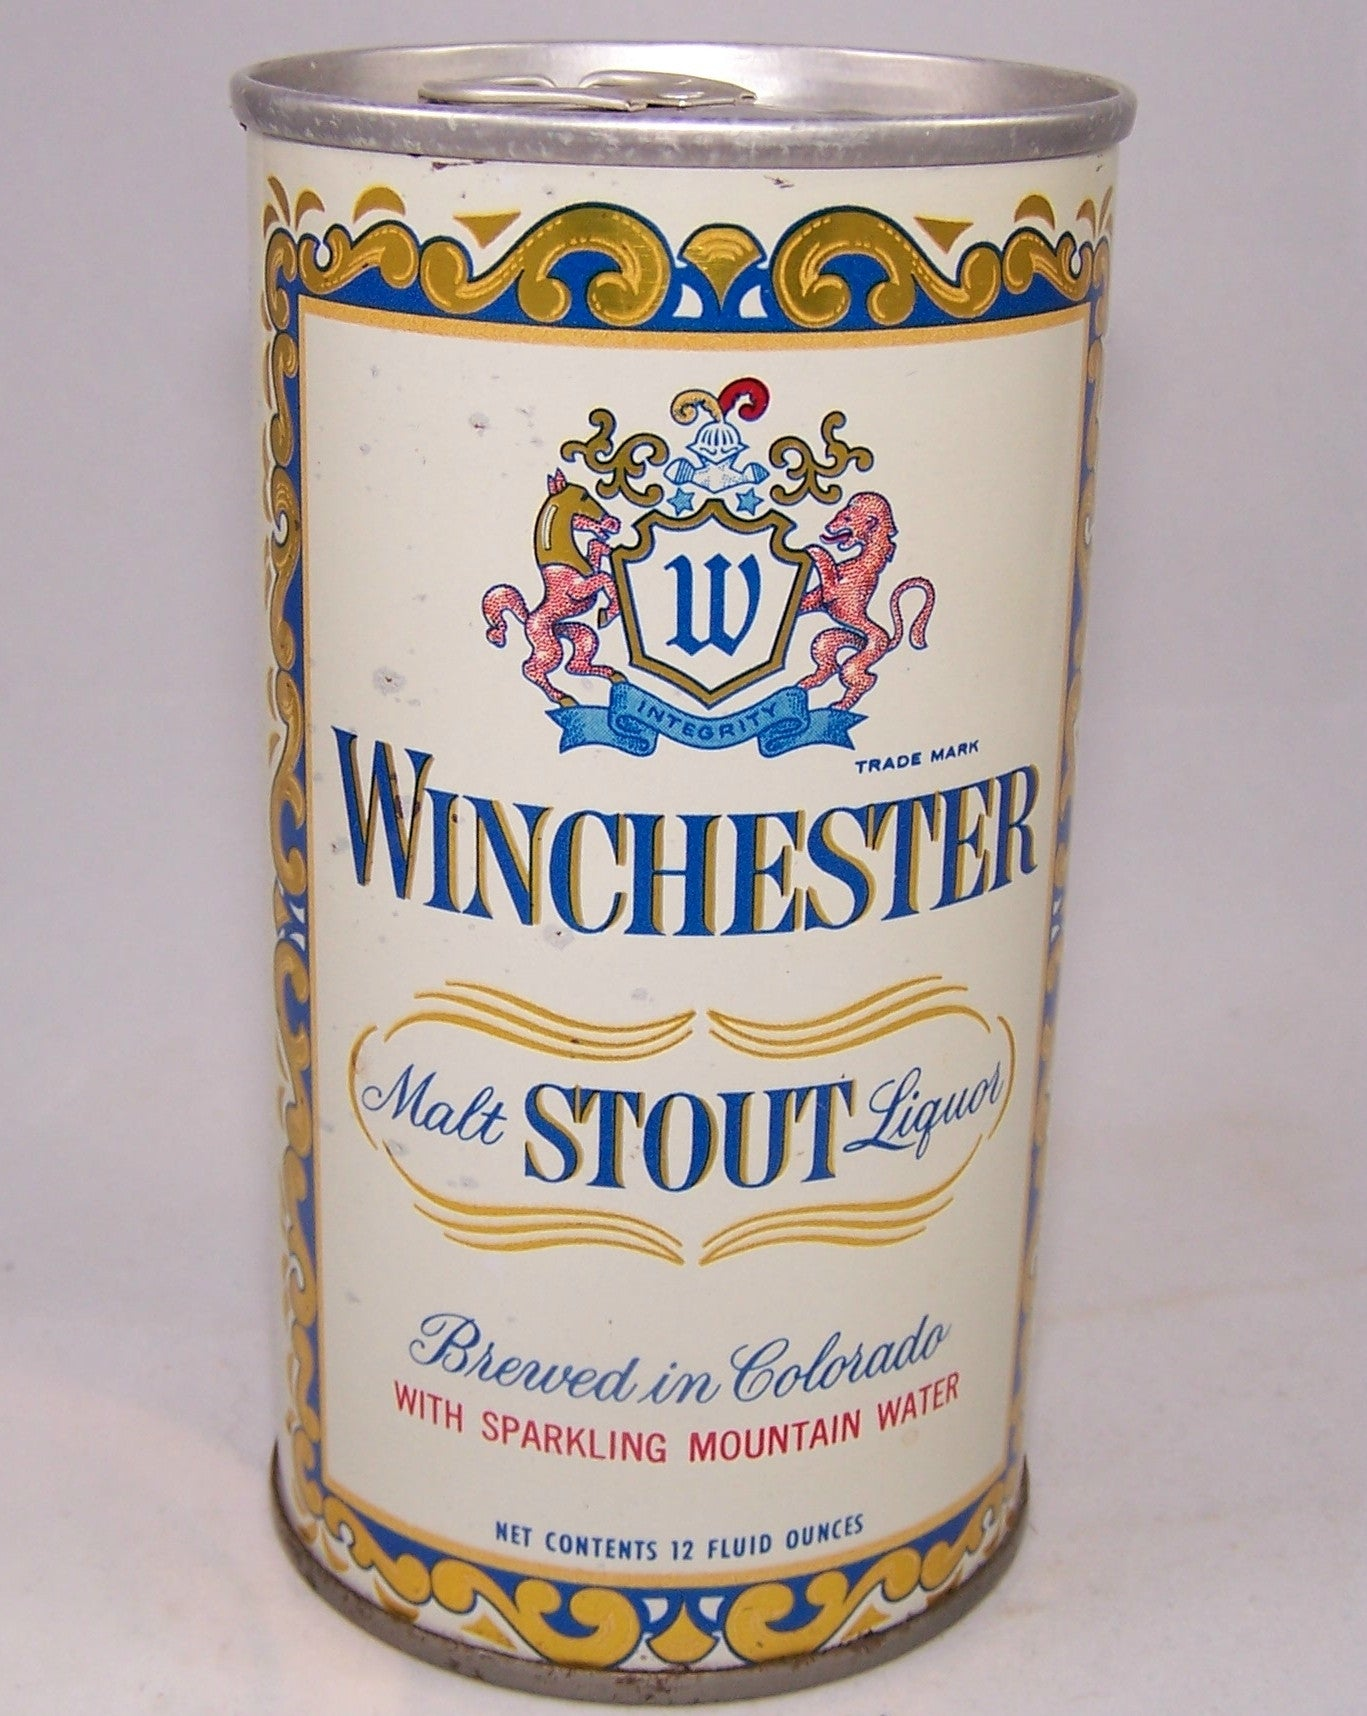 Winchester Stout Malt Liquor, USBC II 135-13, Grade 1 Sold on 06/15/16